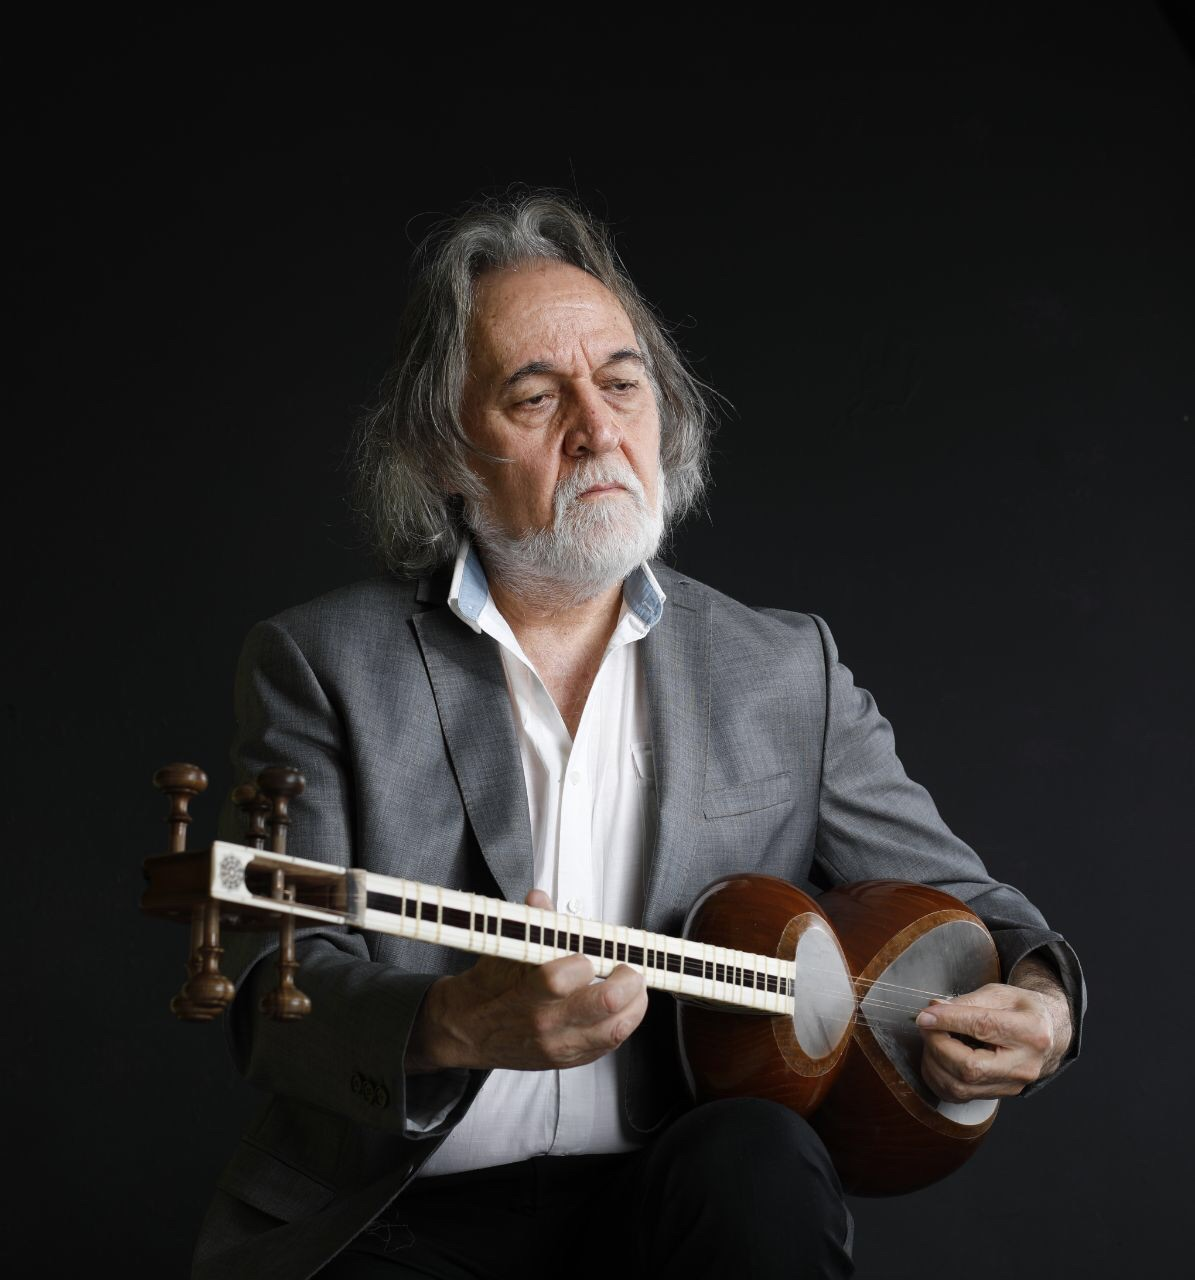 A portrait of Majid Derakshani holding an Iranian string instrument known as the tar